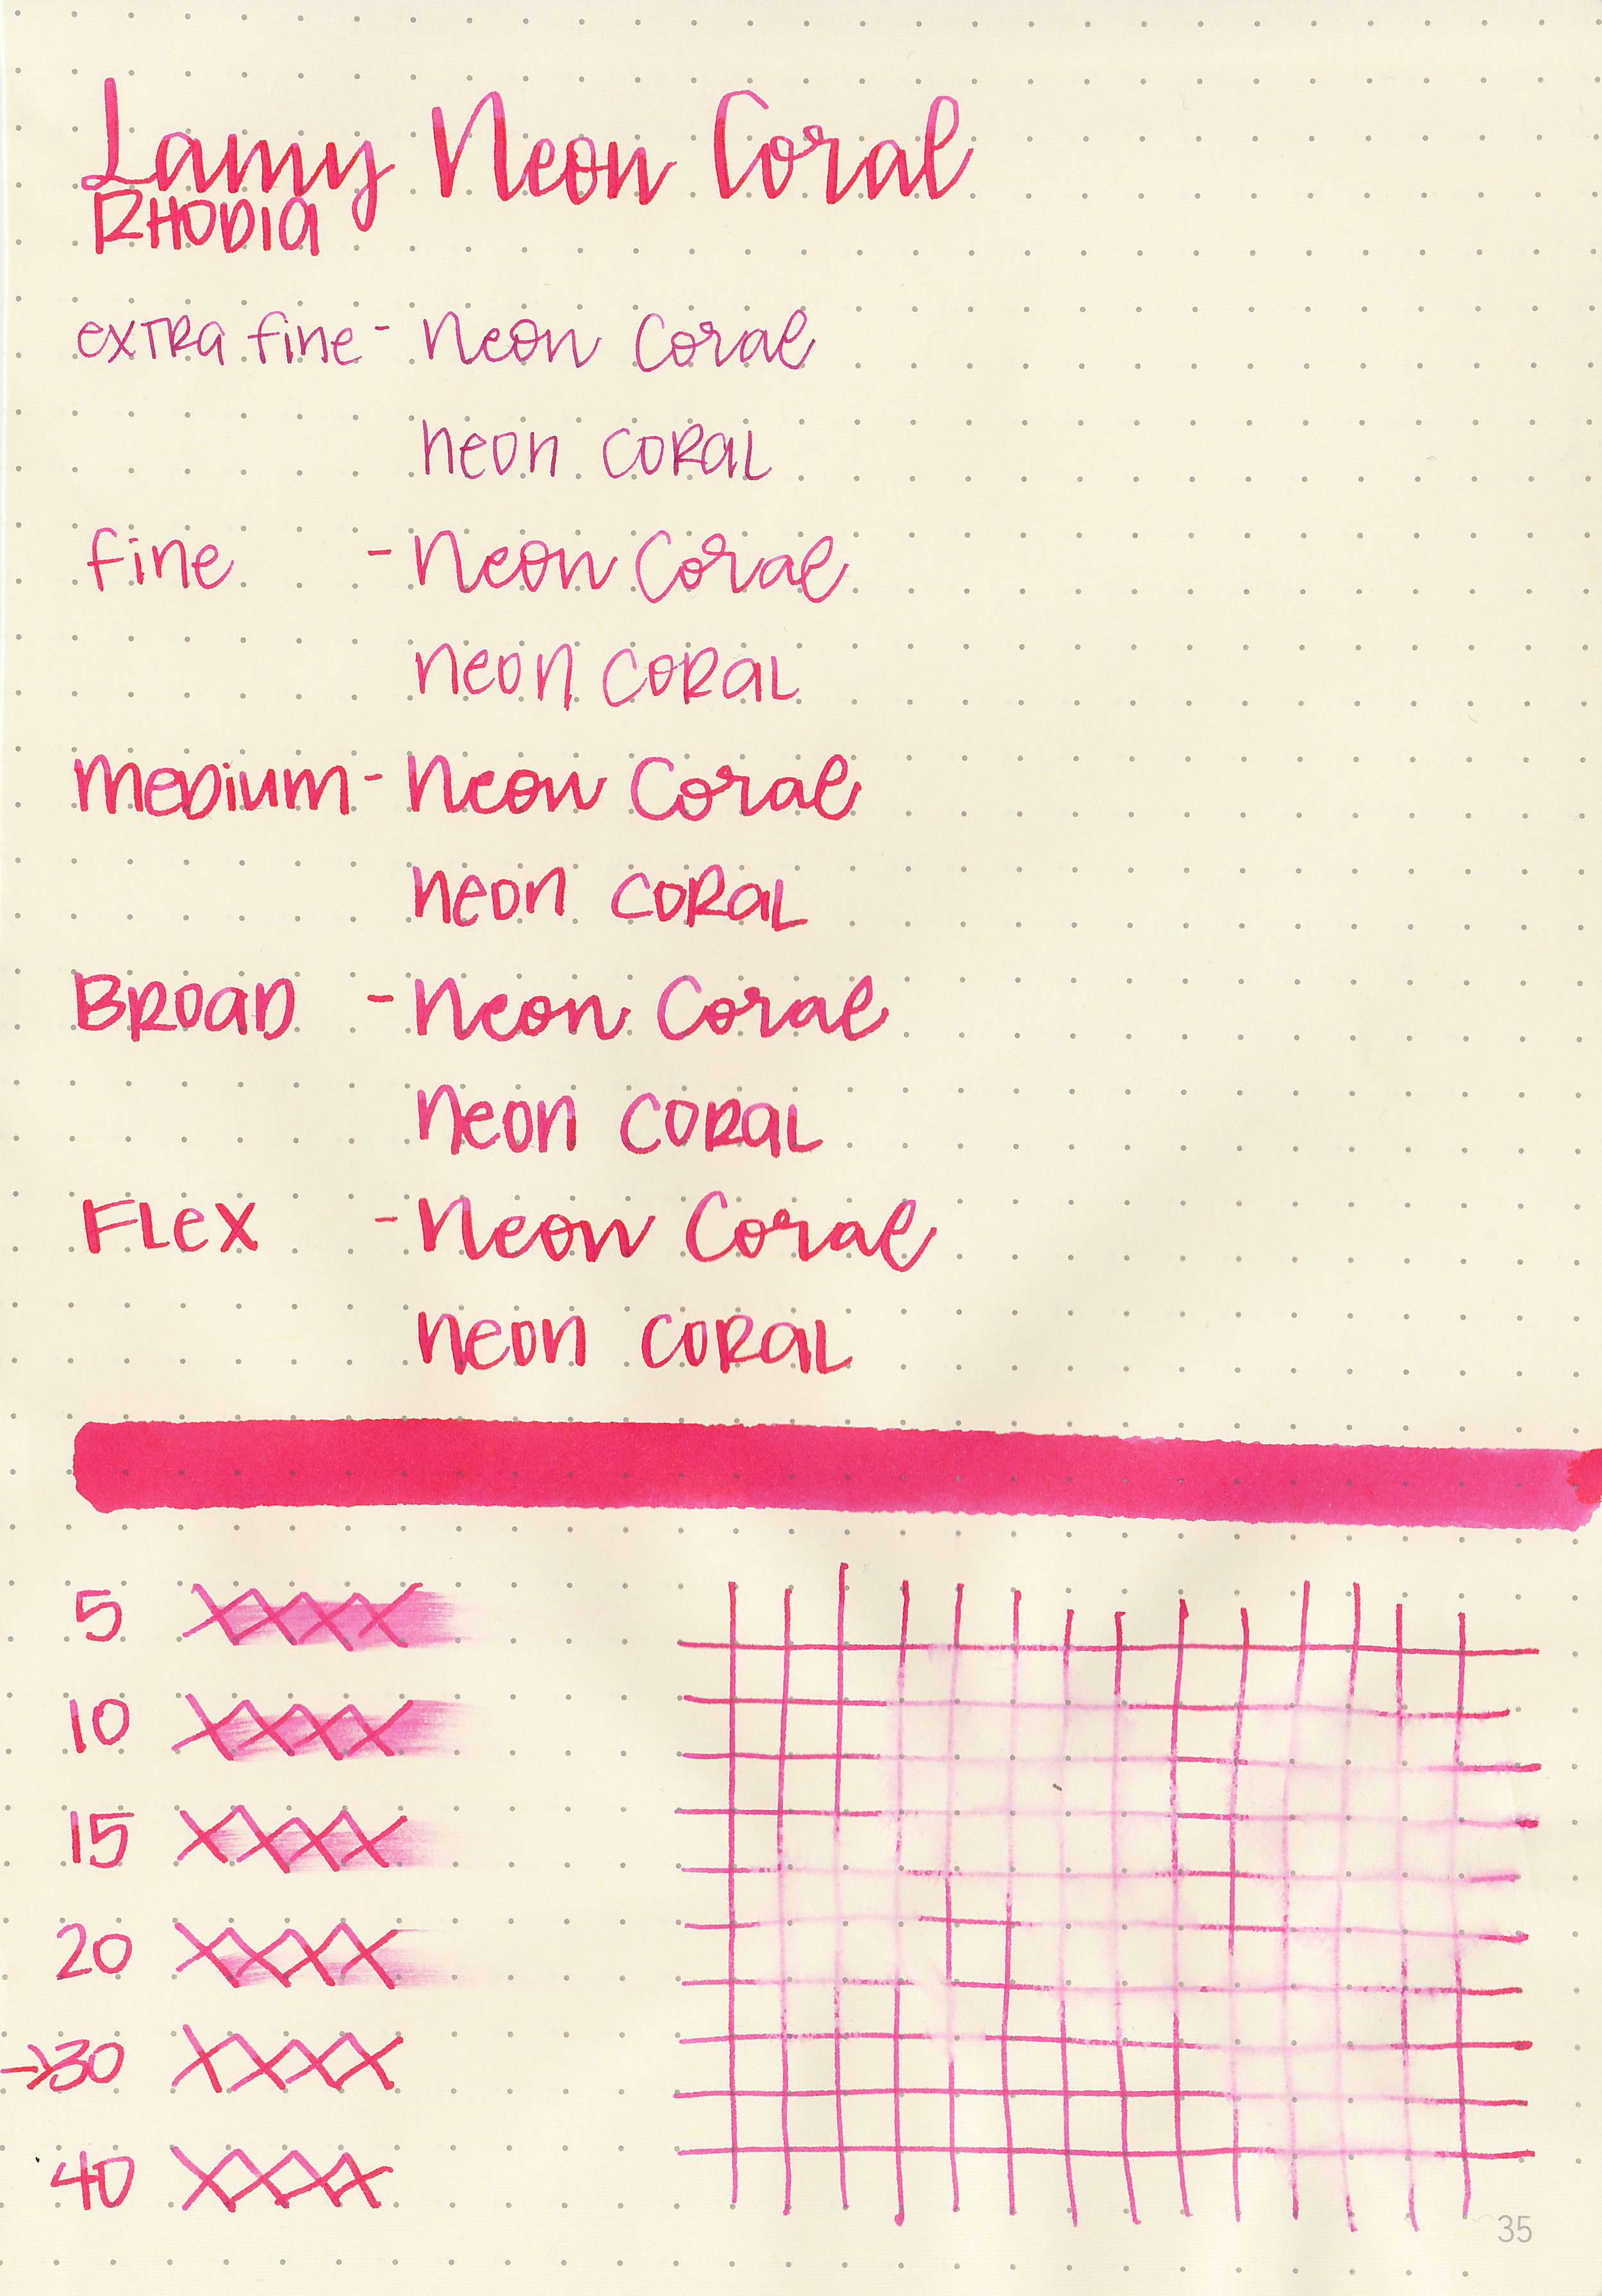 lmy-neon-coral-3.jpg